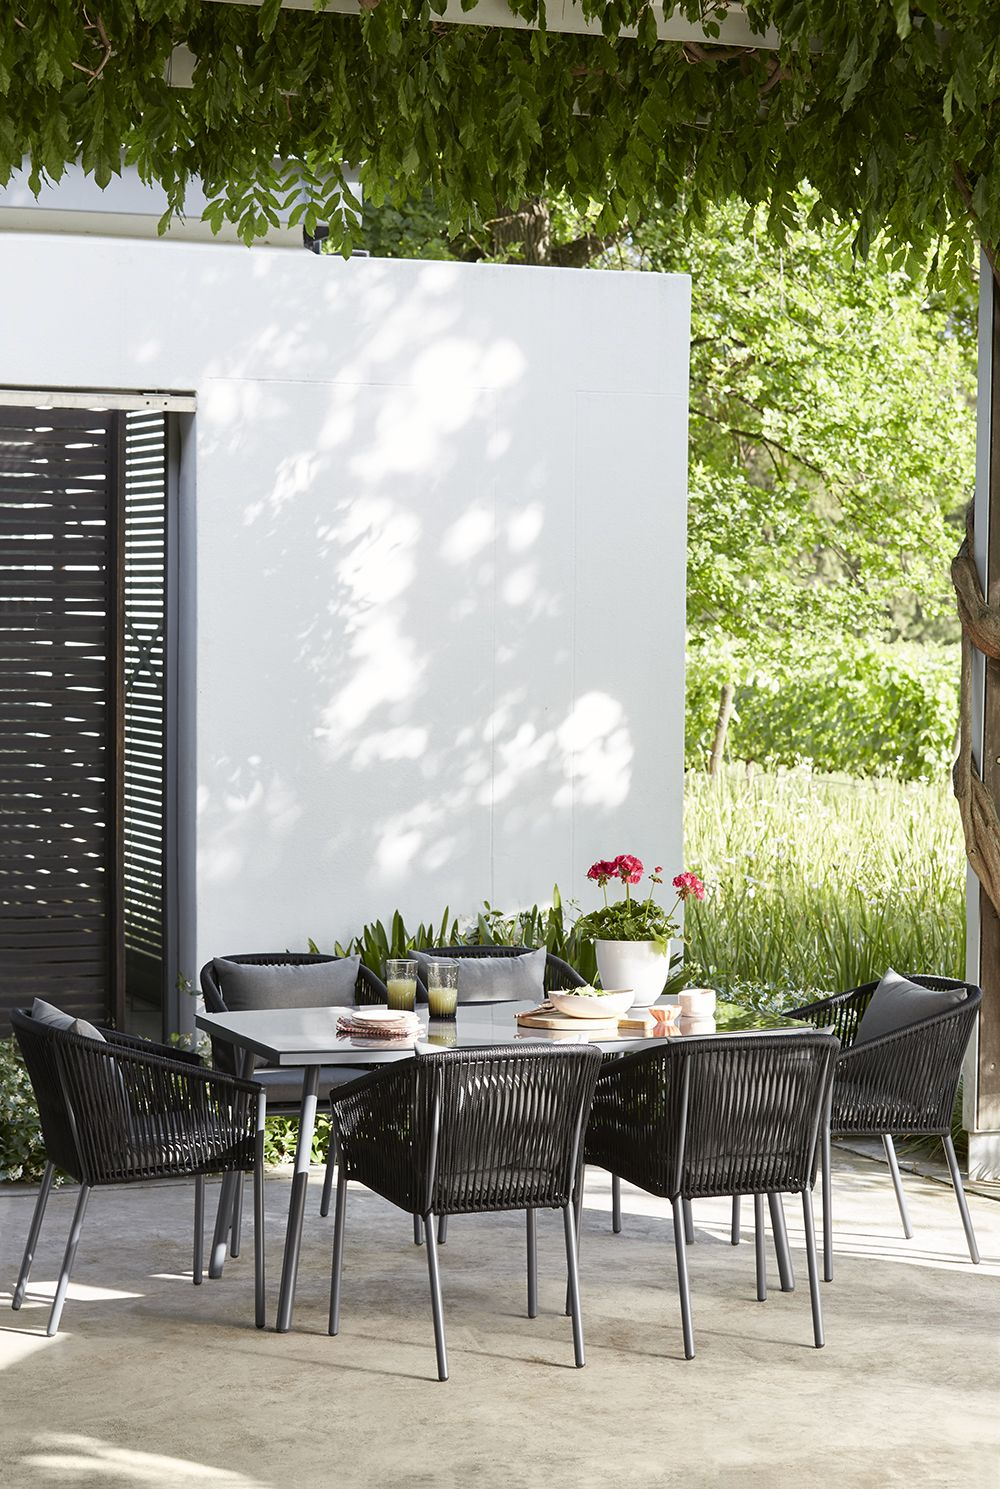 This six seater matara dining set combines powder coated steel frames with knitted textiline